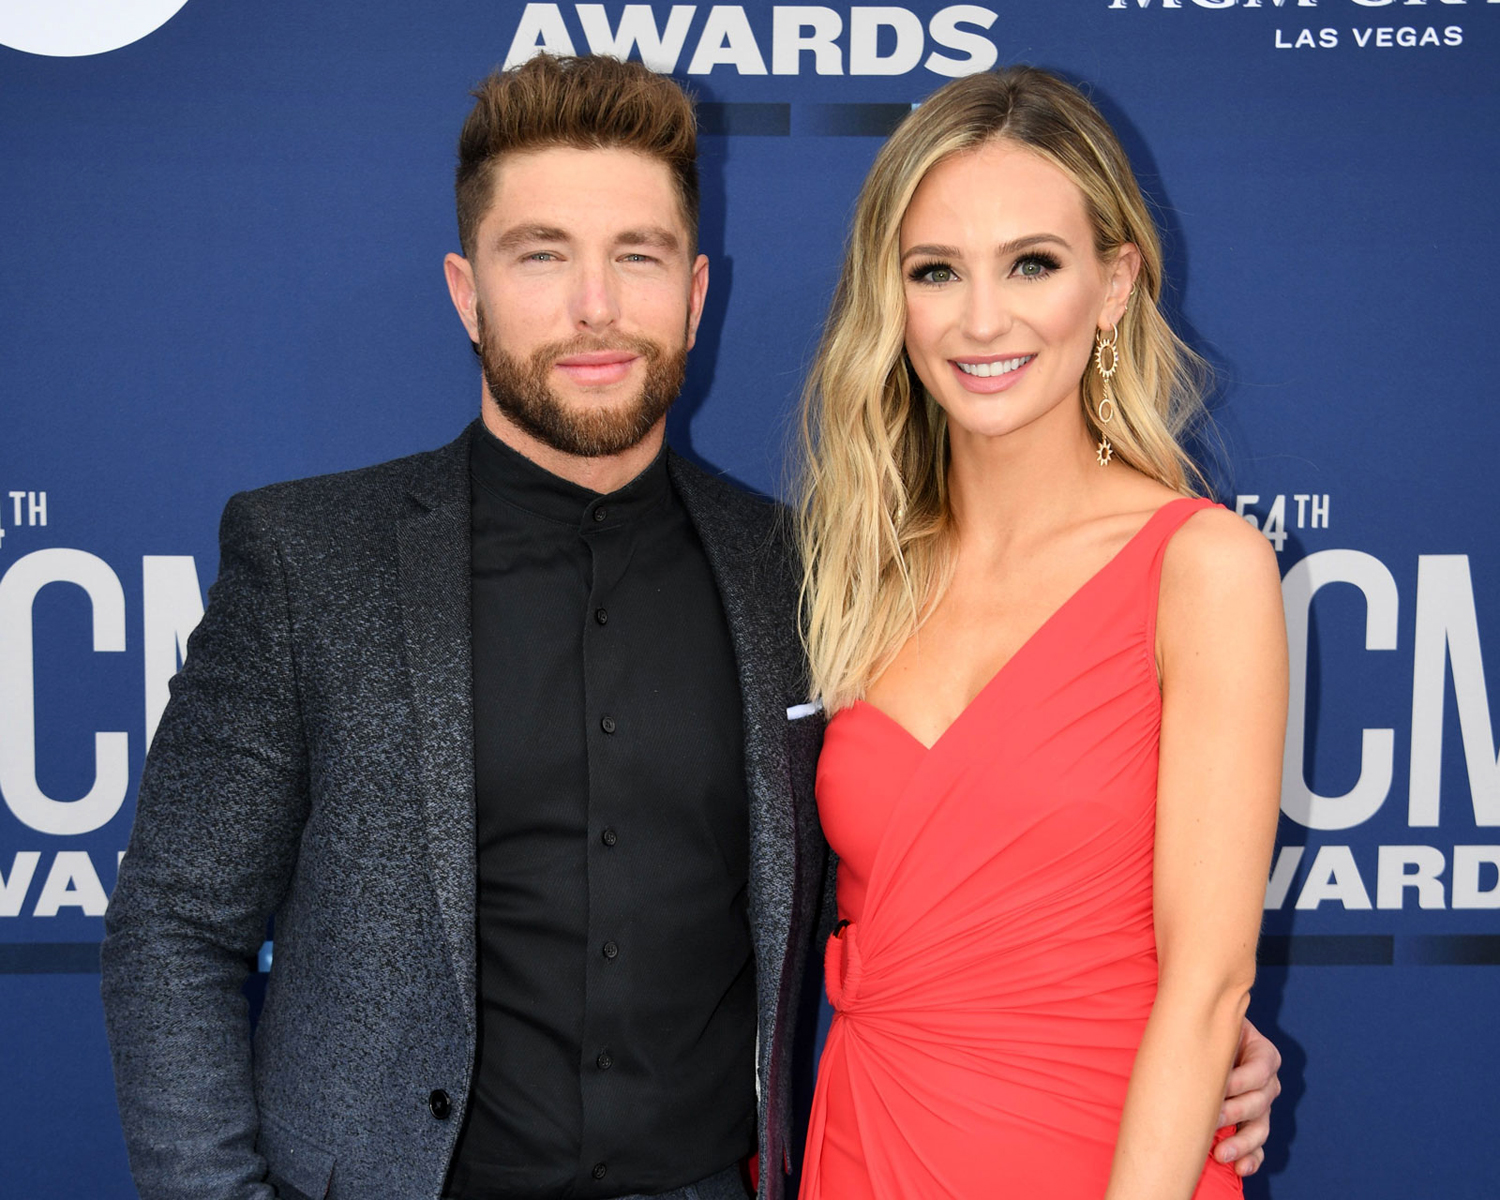 The Bachelor's Lauren Bushnell Is Engaged to Chris Lane